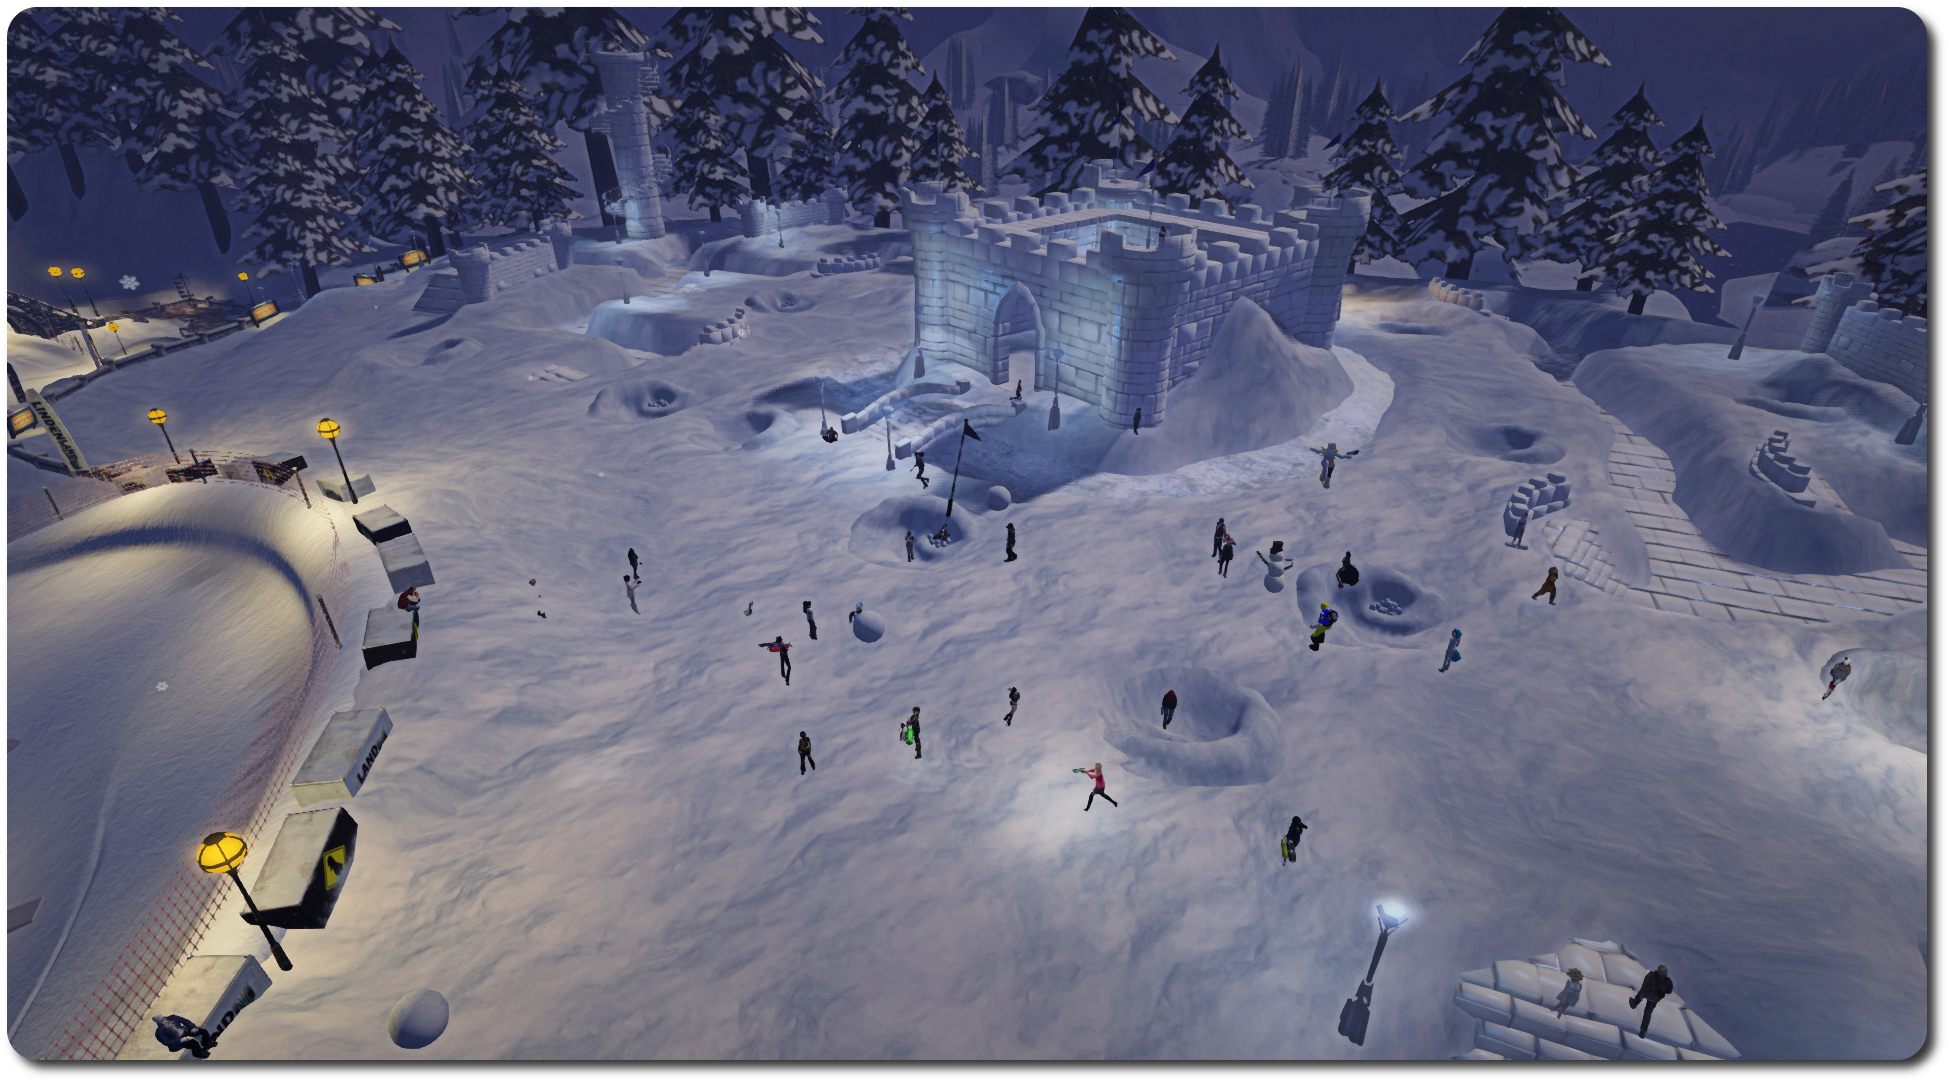 2015 snowball fight, Winter Wonderland;; Inara Pey, February 2015, on Flickr